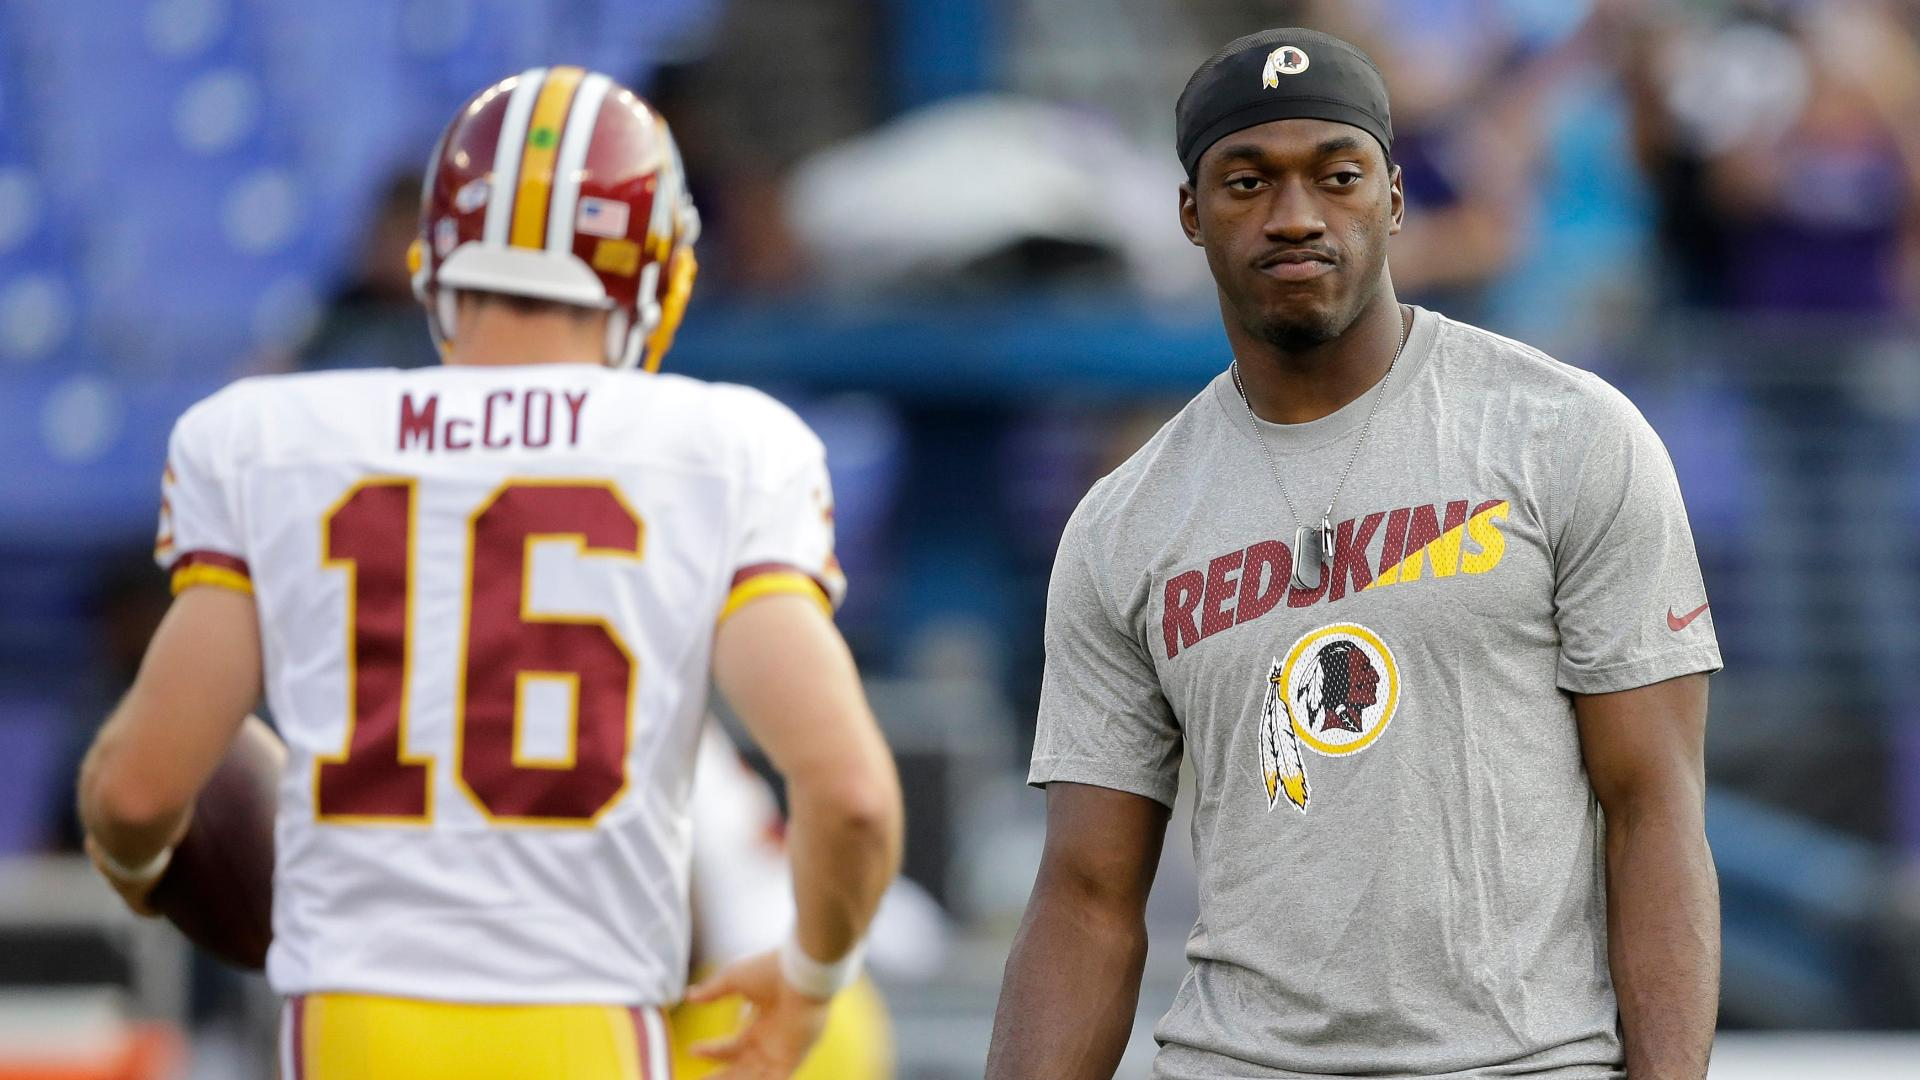 http://a.espncdn.com/media/motion/2015/0901/dm_150901_nfl_carter_on_starting_rg3795/dm_150901_nfl_carter_on_starting_rg3795.jpg